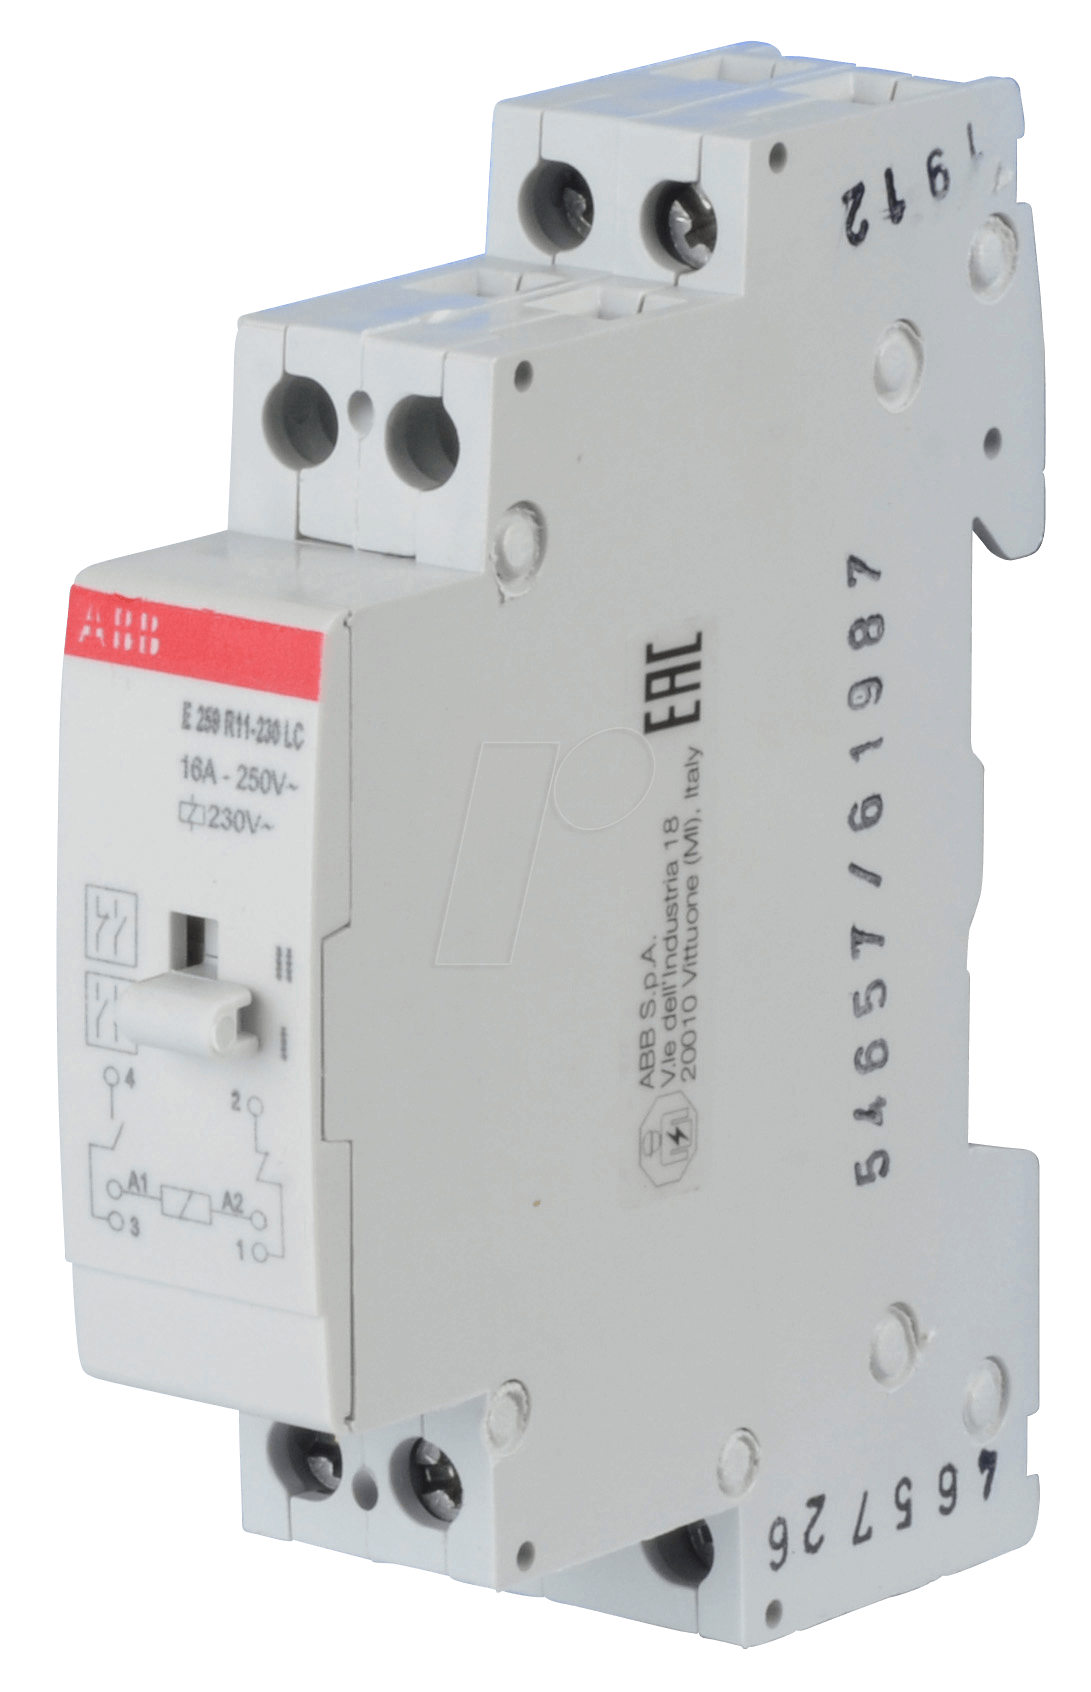 Abb E259r11 Lc Installation Relay 1 No Contact Nc Circuit Breaker With 230 V